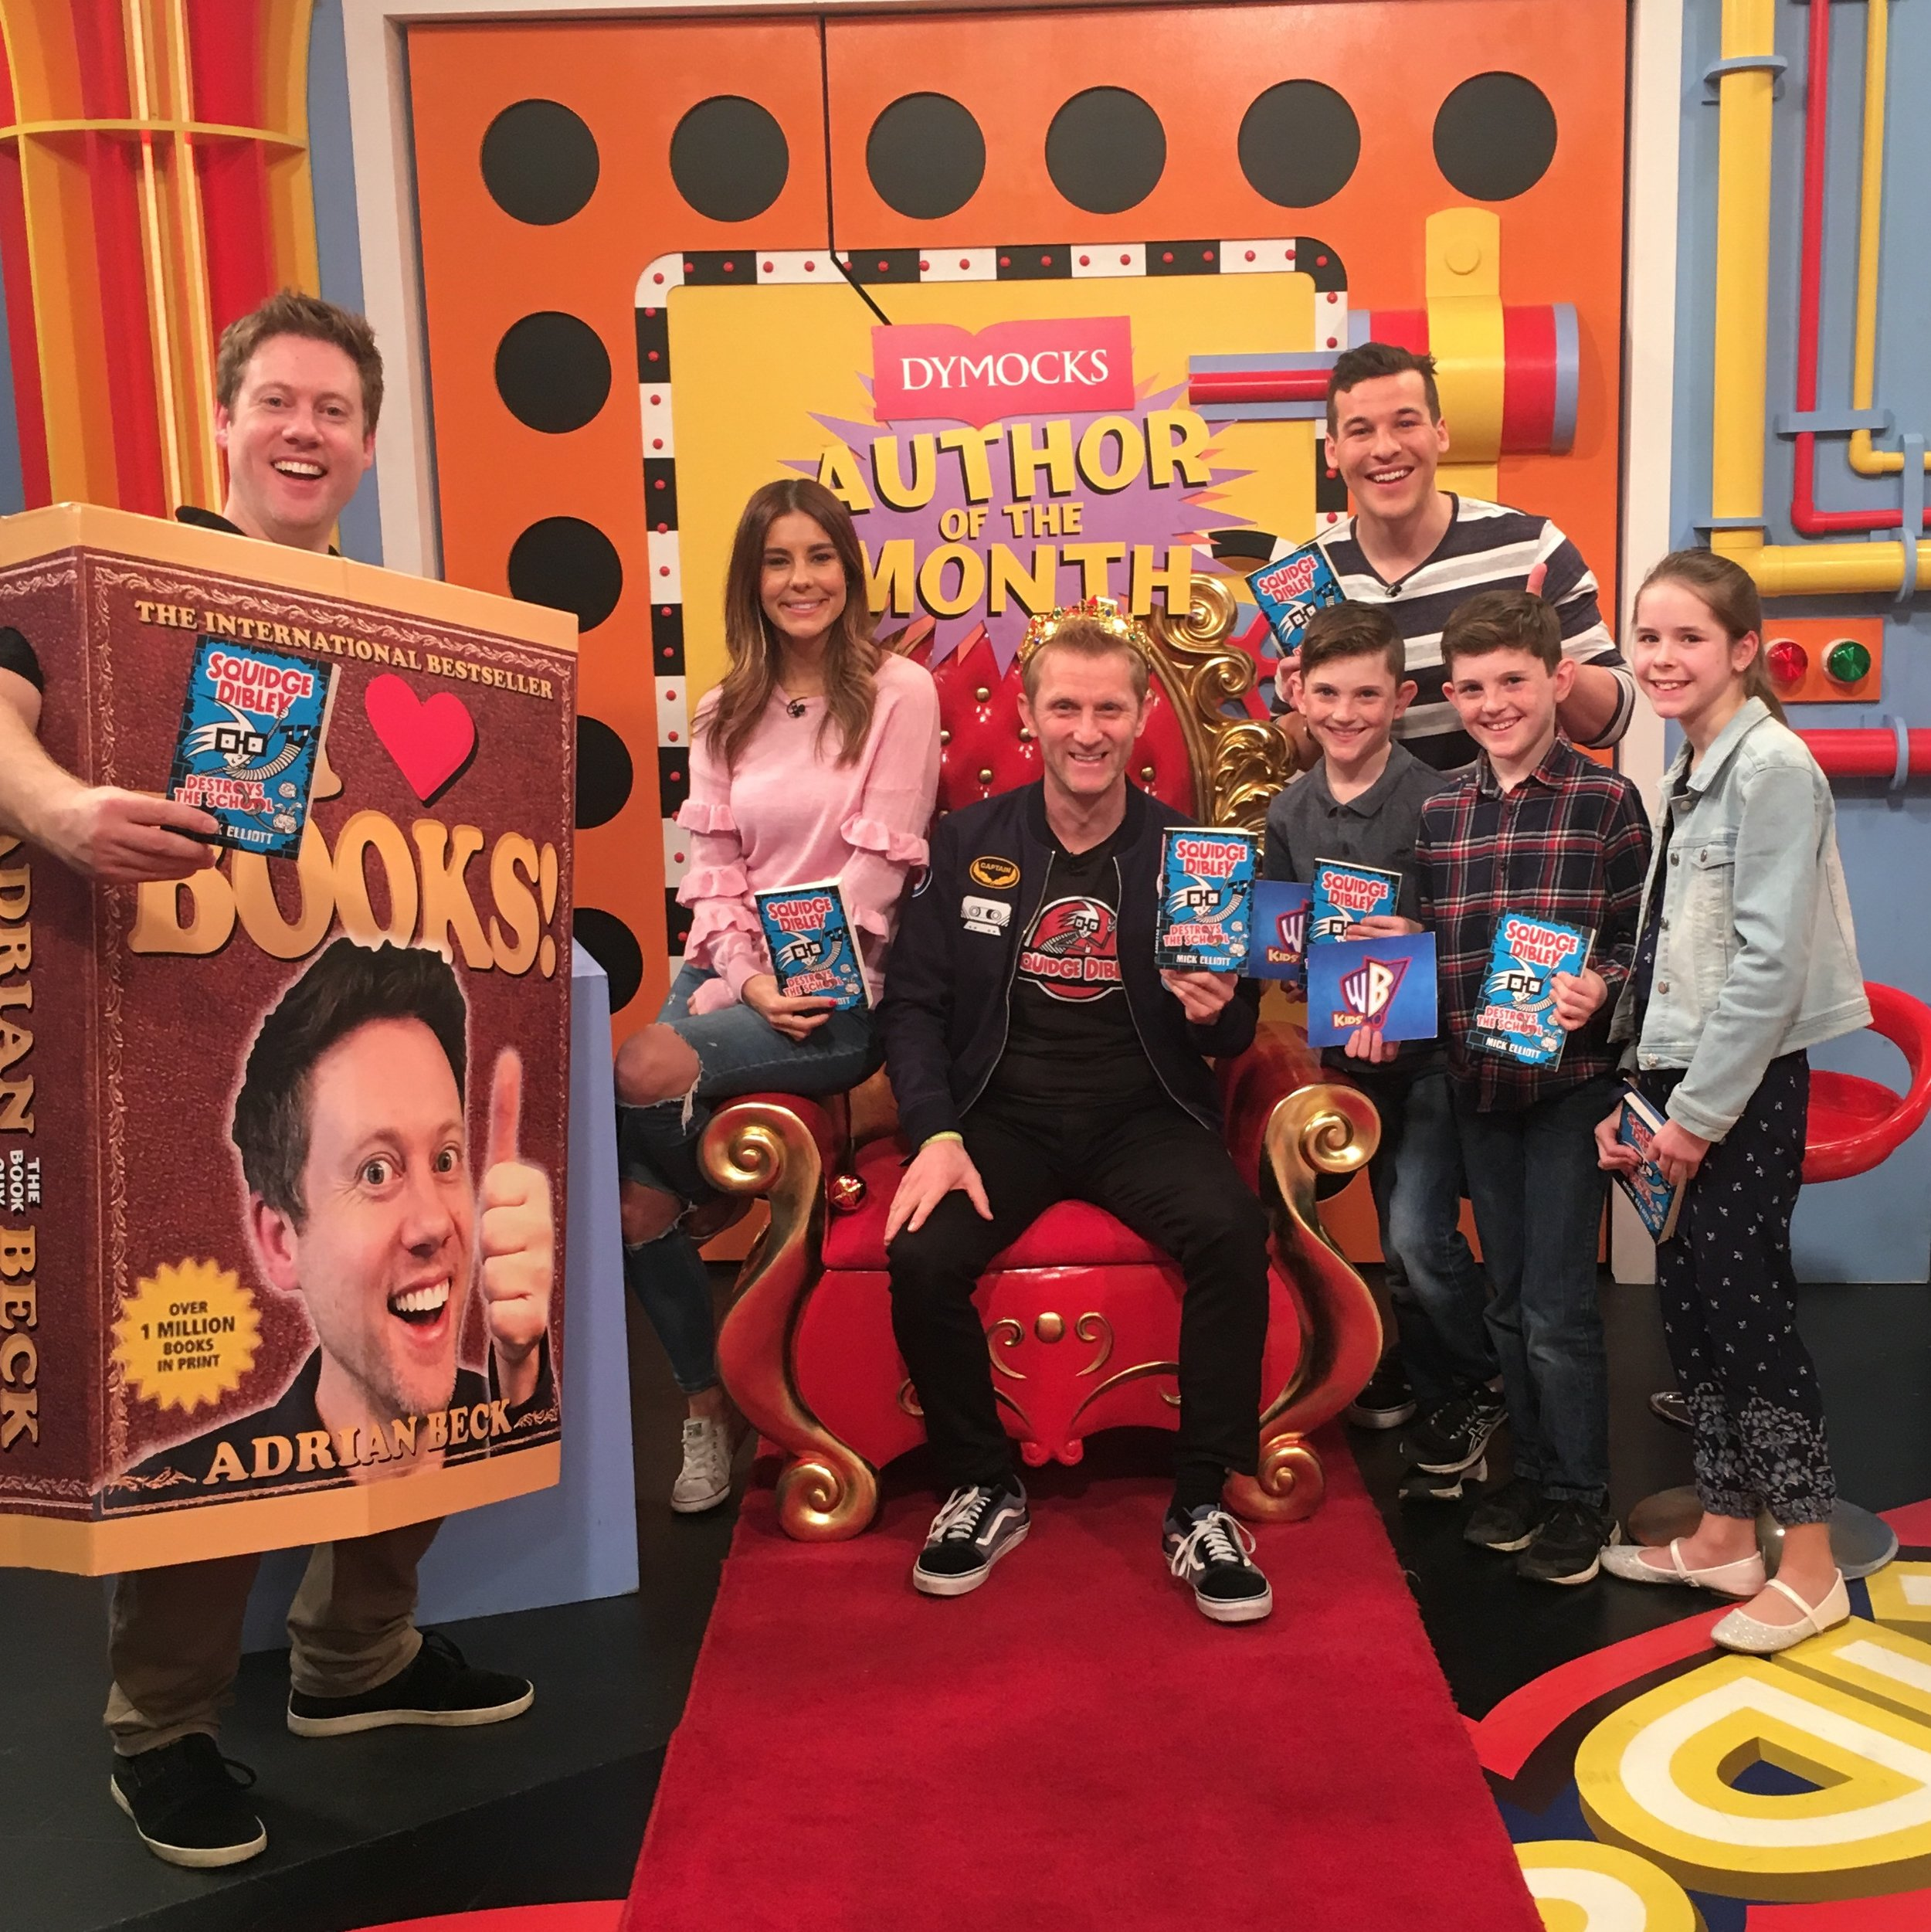 Mick on set at Channel 9 being crowned DYMOCKS AUTHOR OF THE MONTH on Kids WB with Adrian Beck.